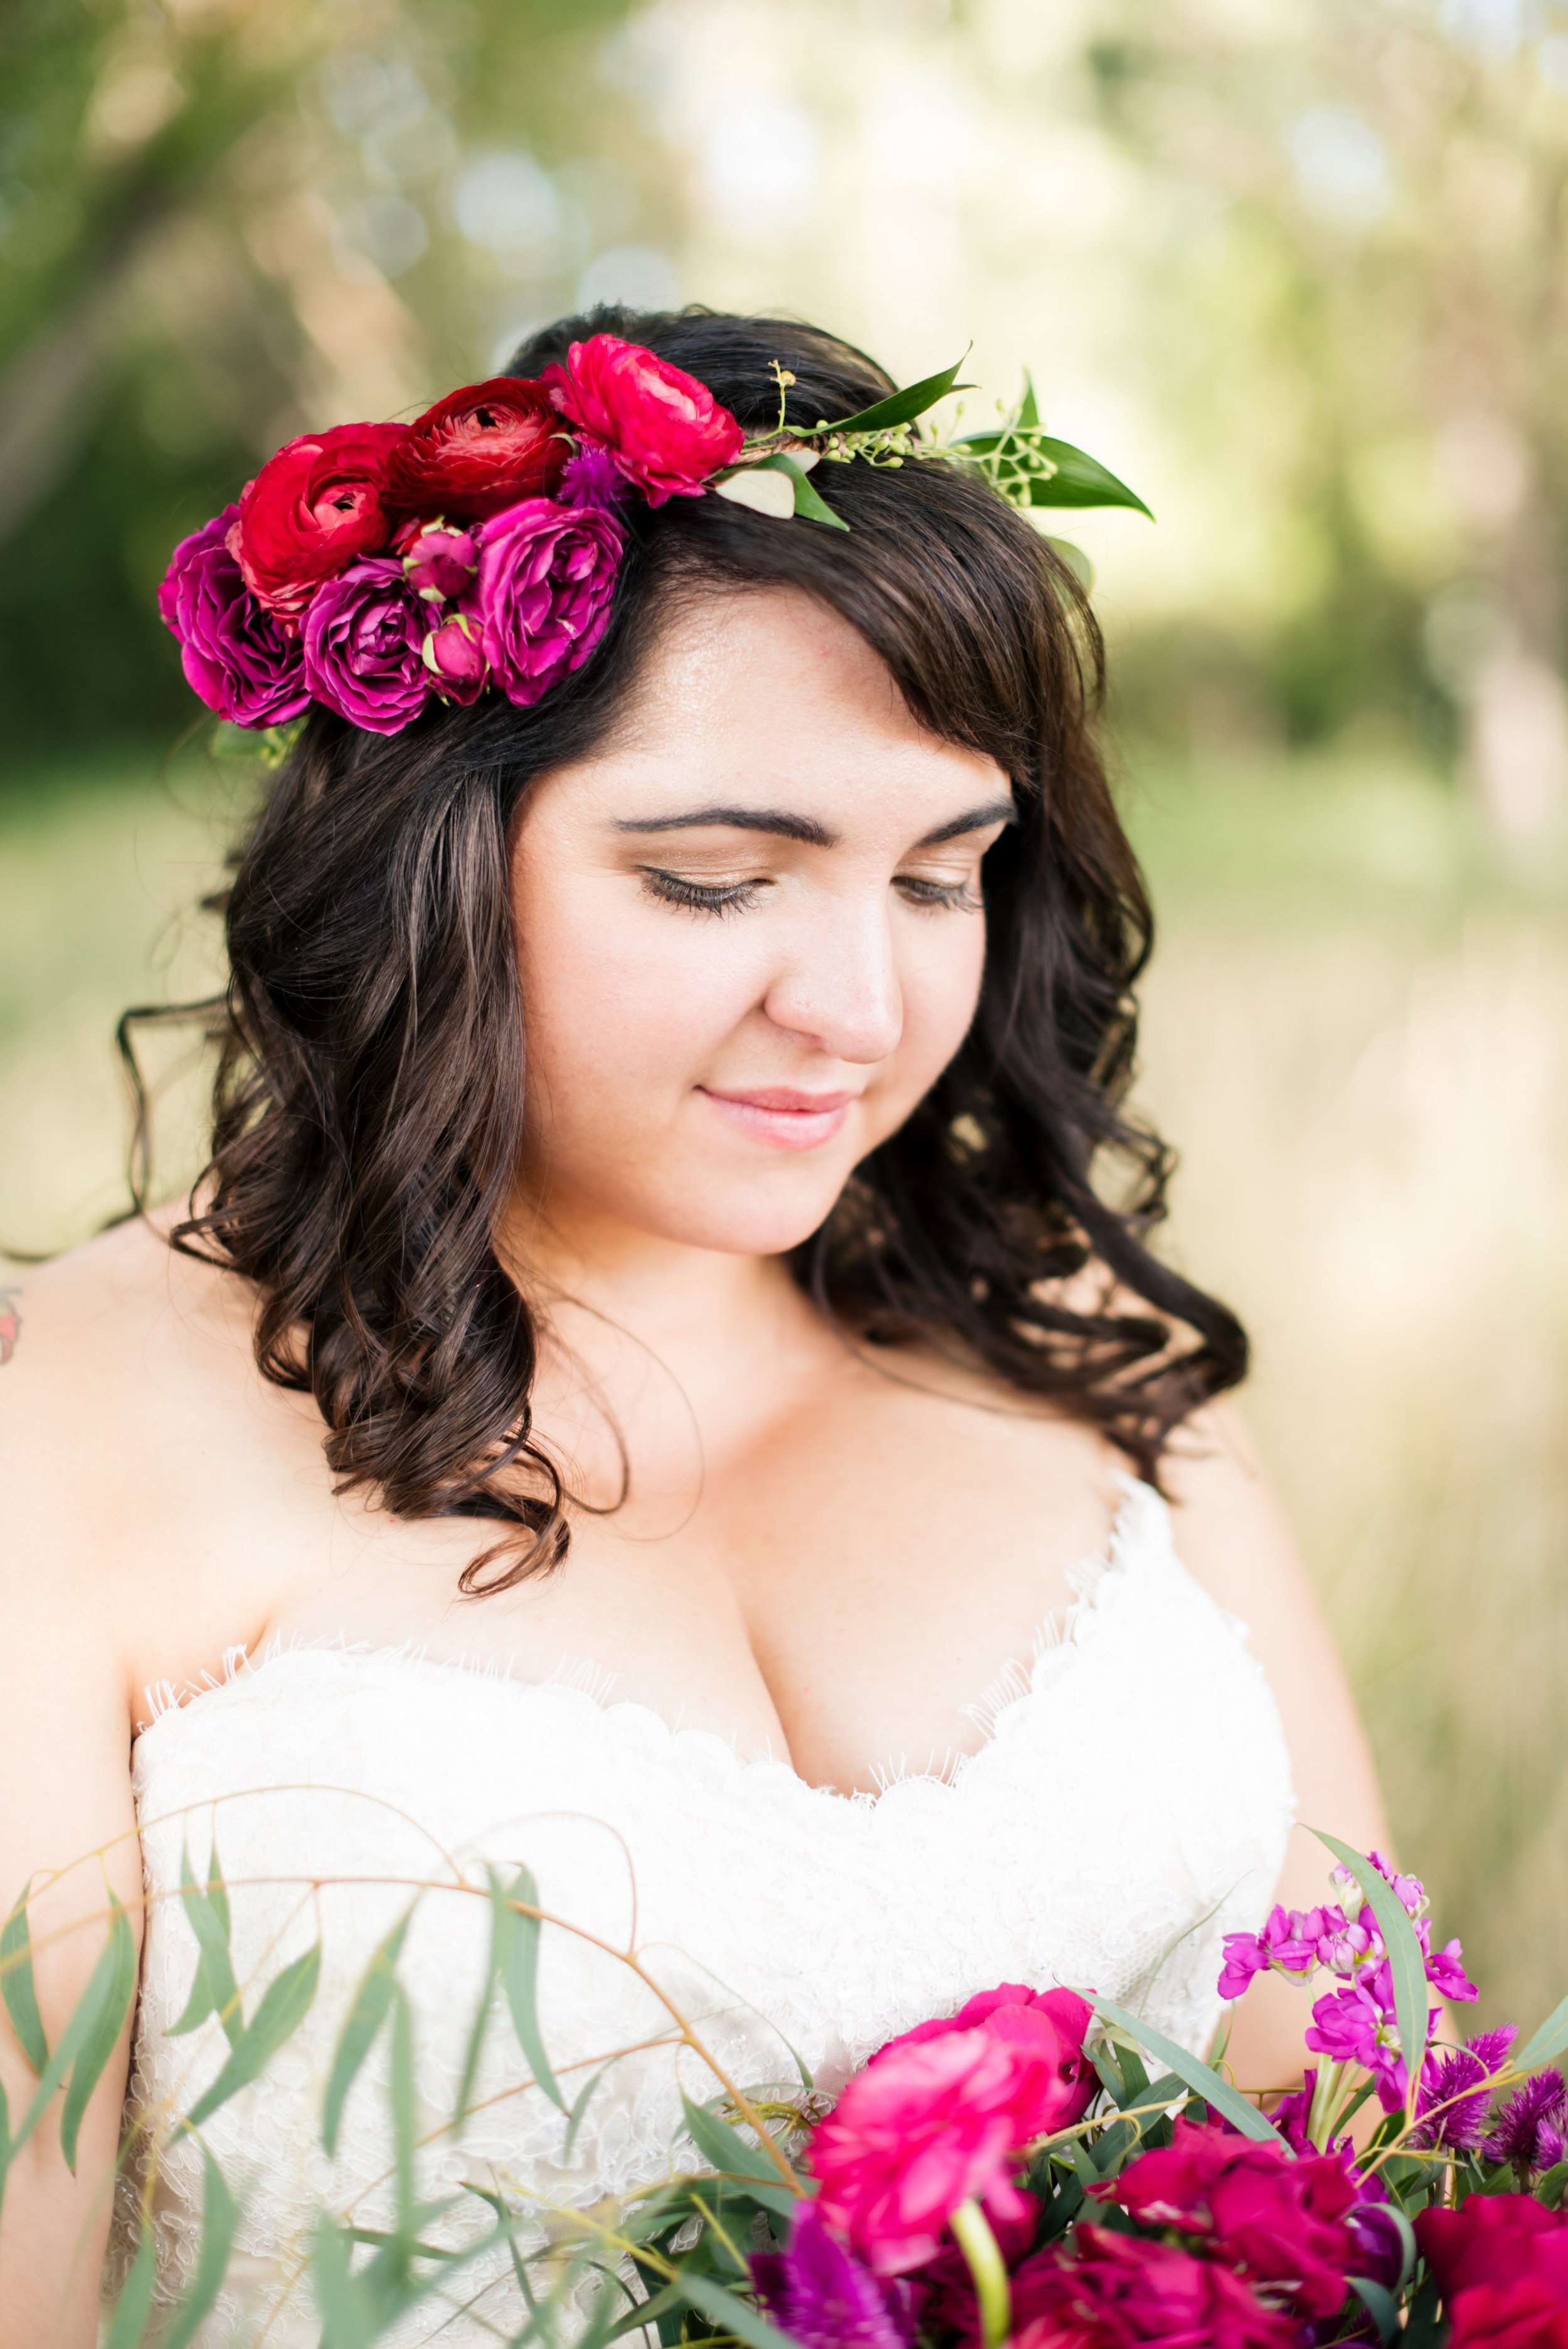 Flowers by Lace and Lilies, Flower Crown, Flower Halo, Bridal Bouquet, Vibrant Pink Wedding